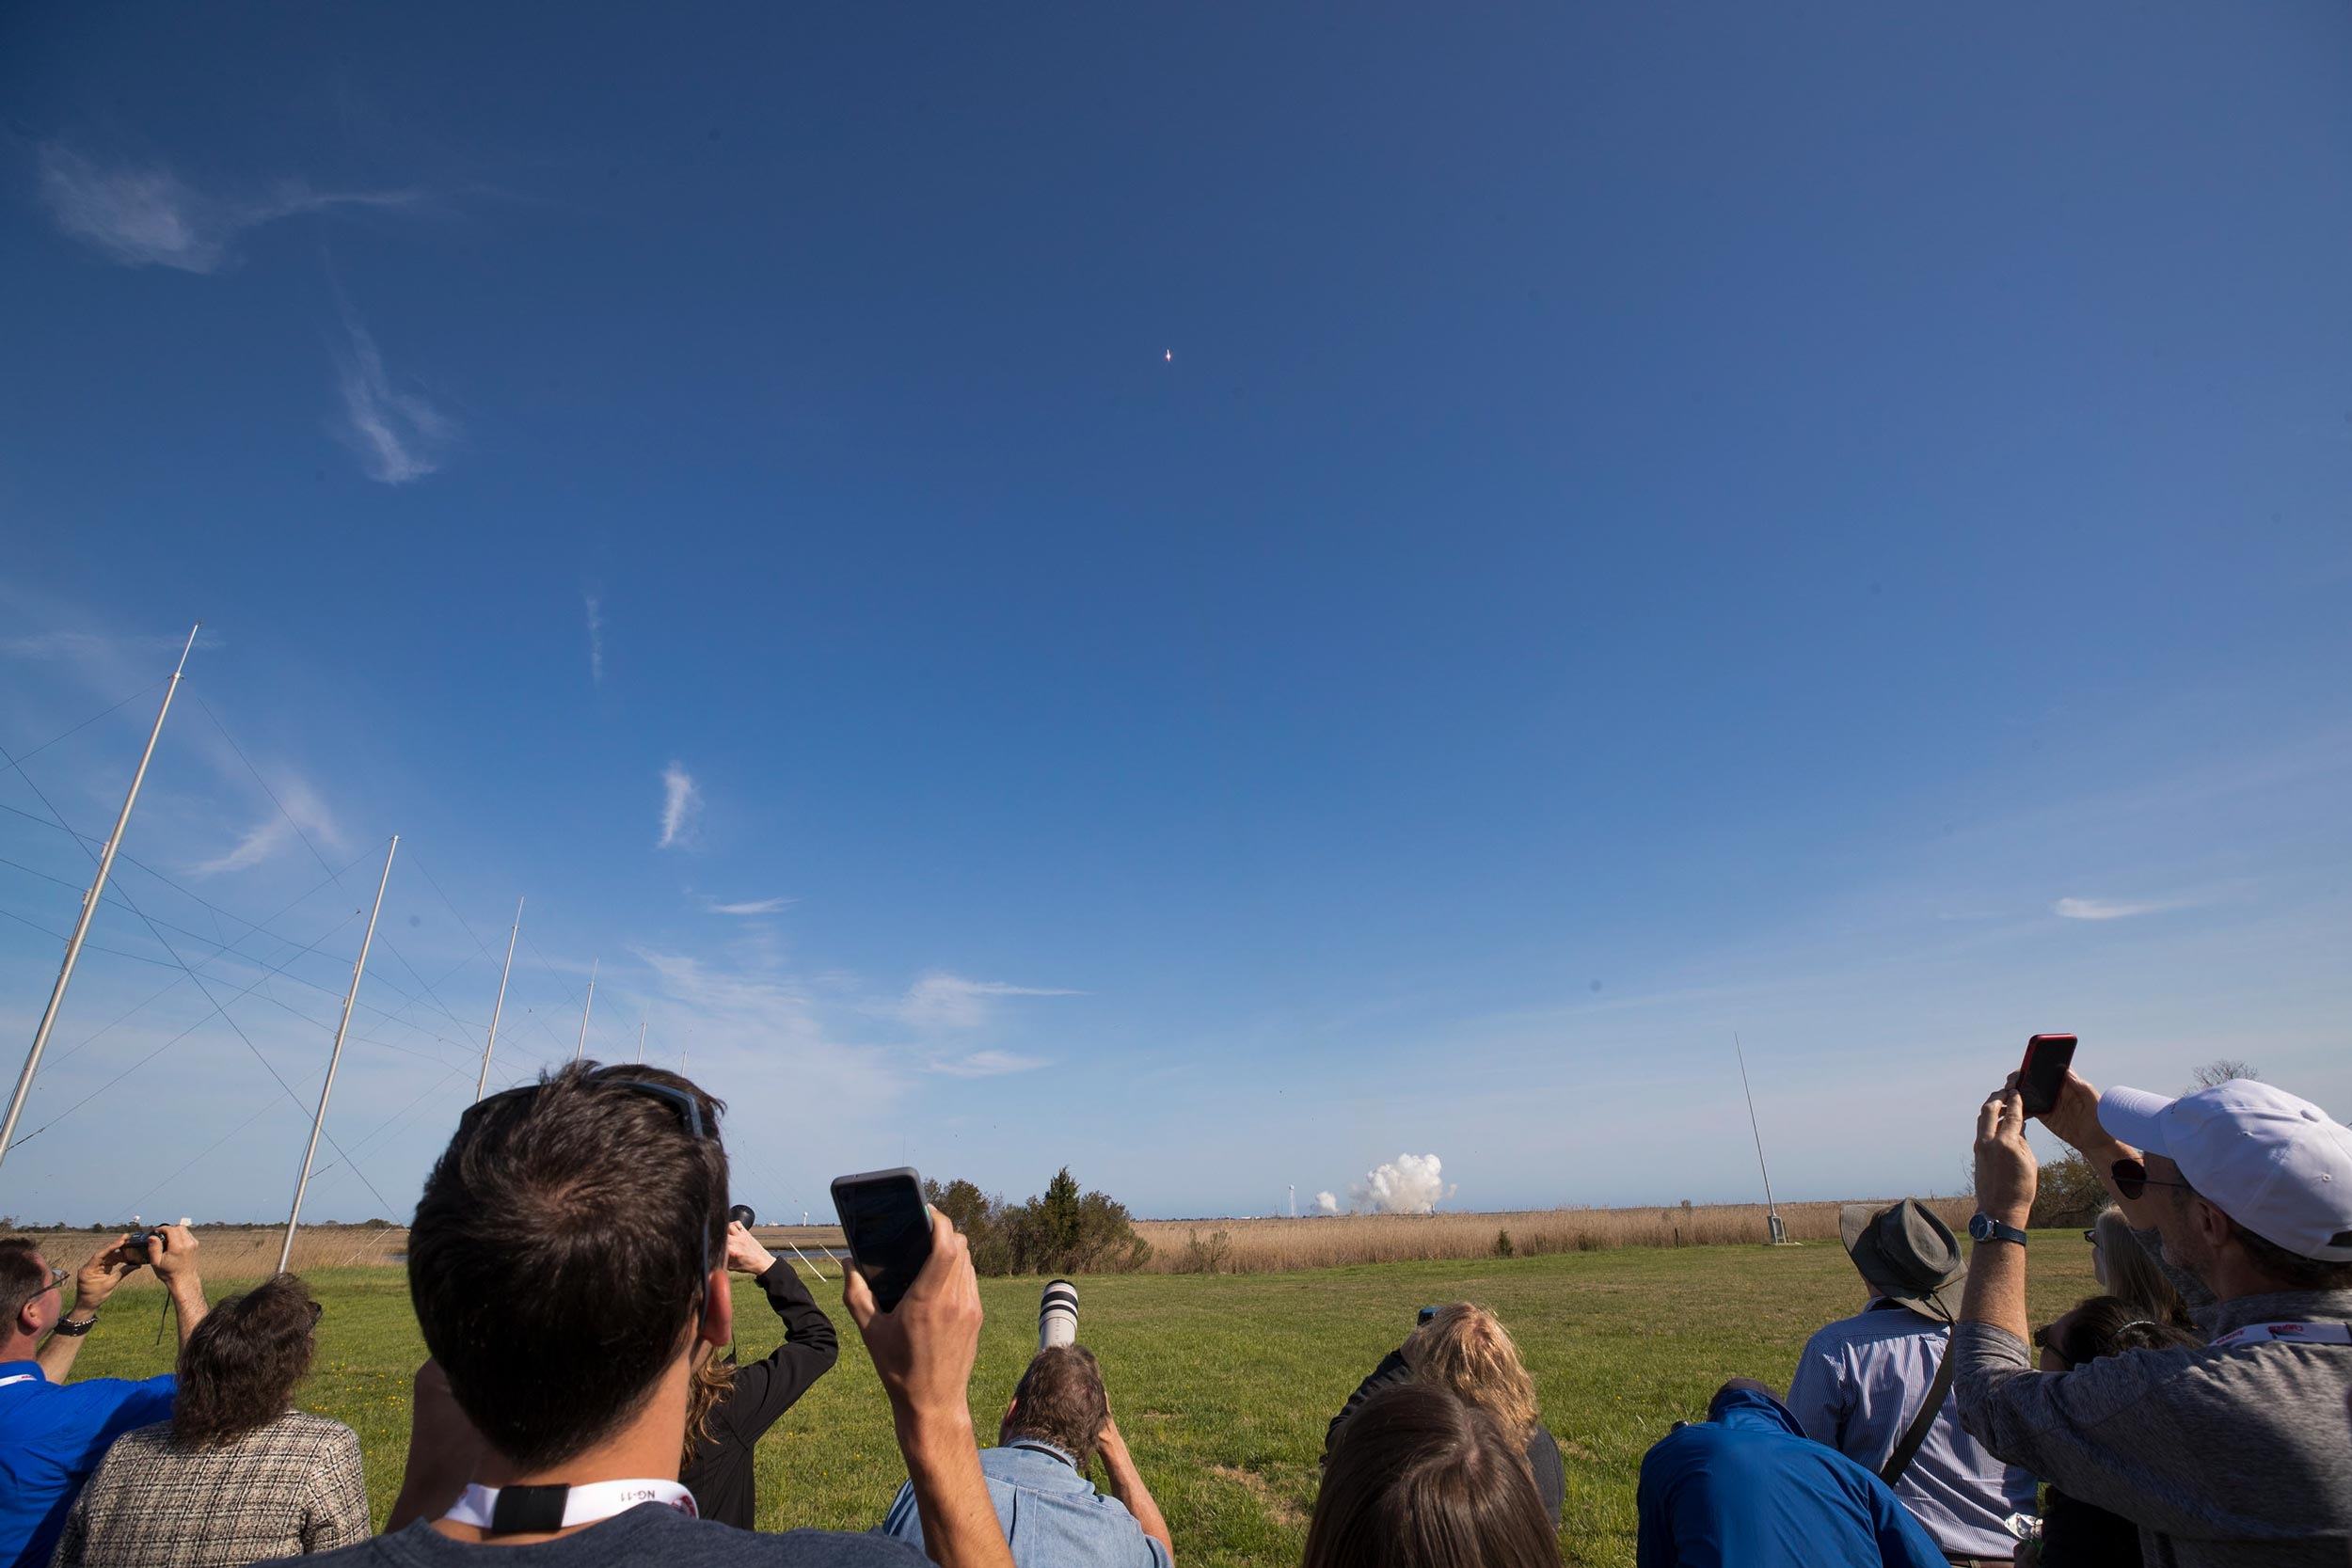 UVA students and others watch as the rocket carries the CubeSat payload into space.